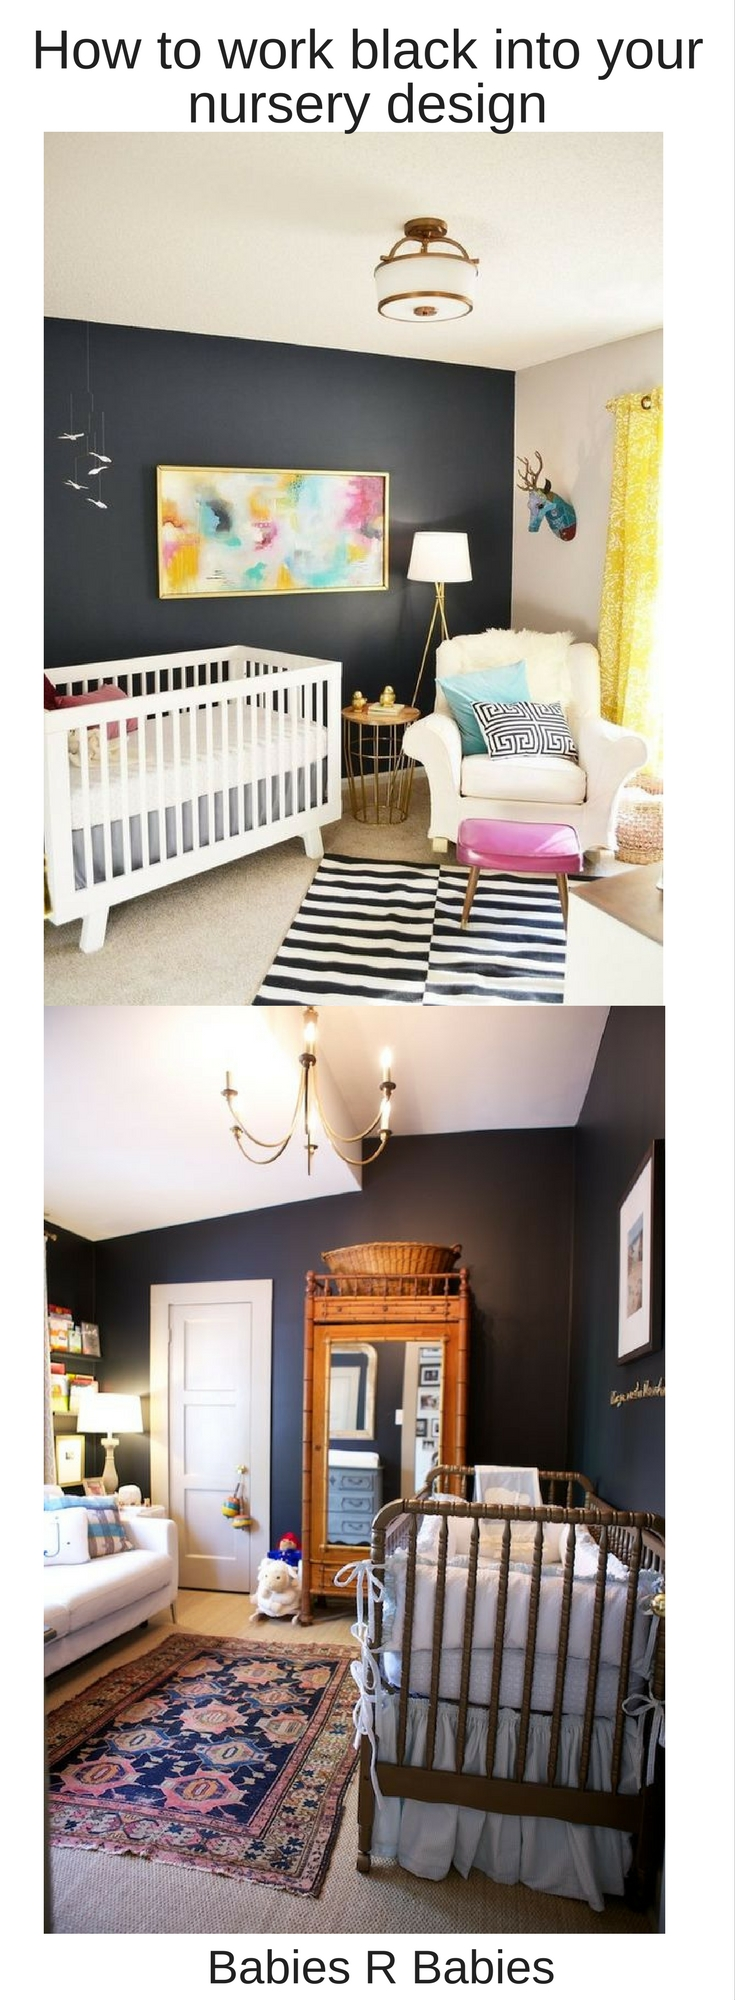 13 ways to work black into your nursery design